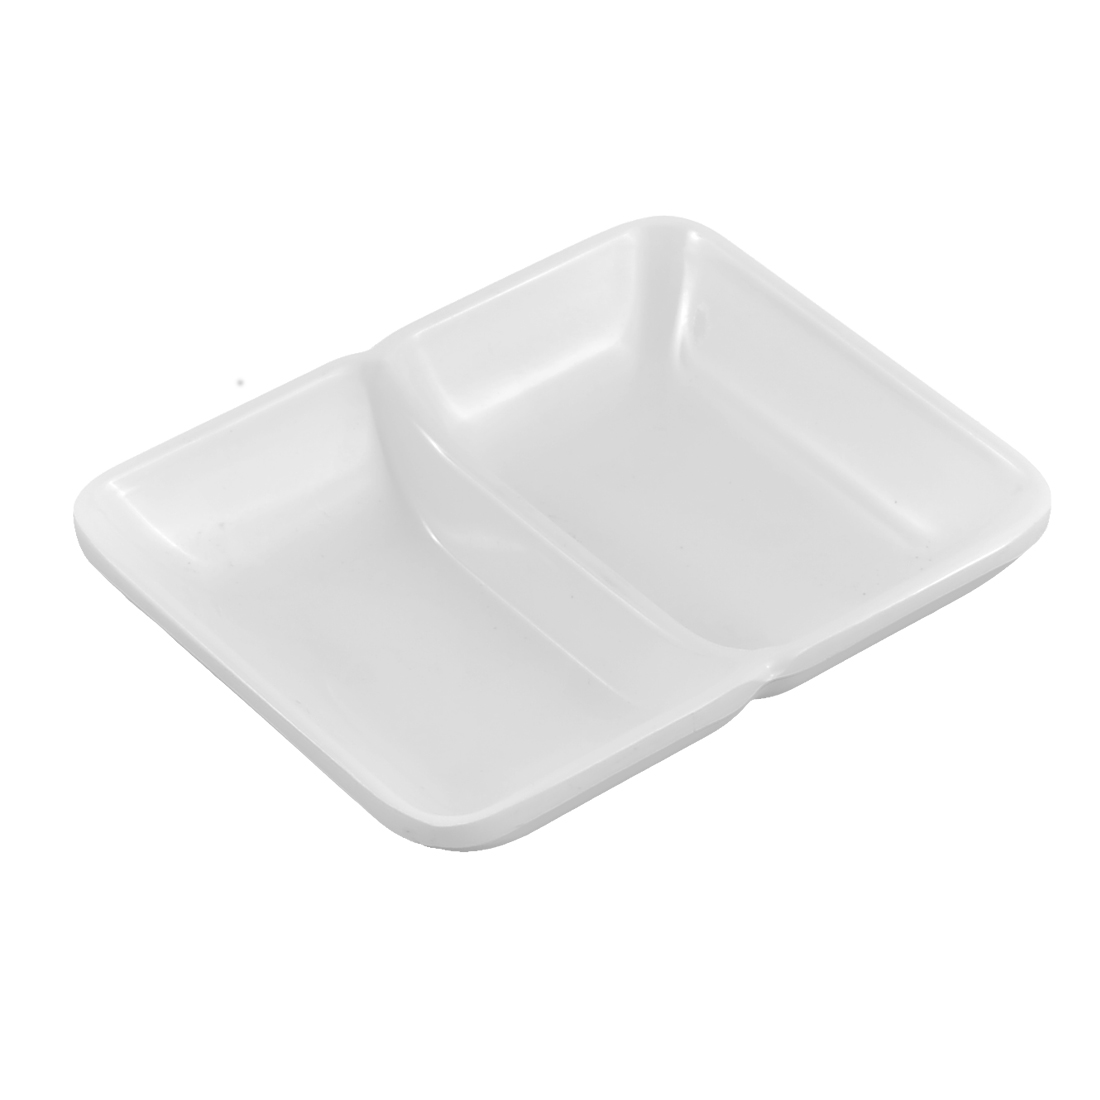 Restaurant 2 Compartments Sushi Soy Sauce Wasabi Dipping Dish Plate